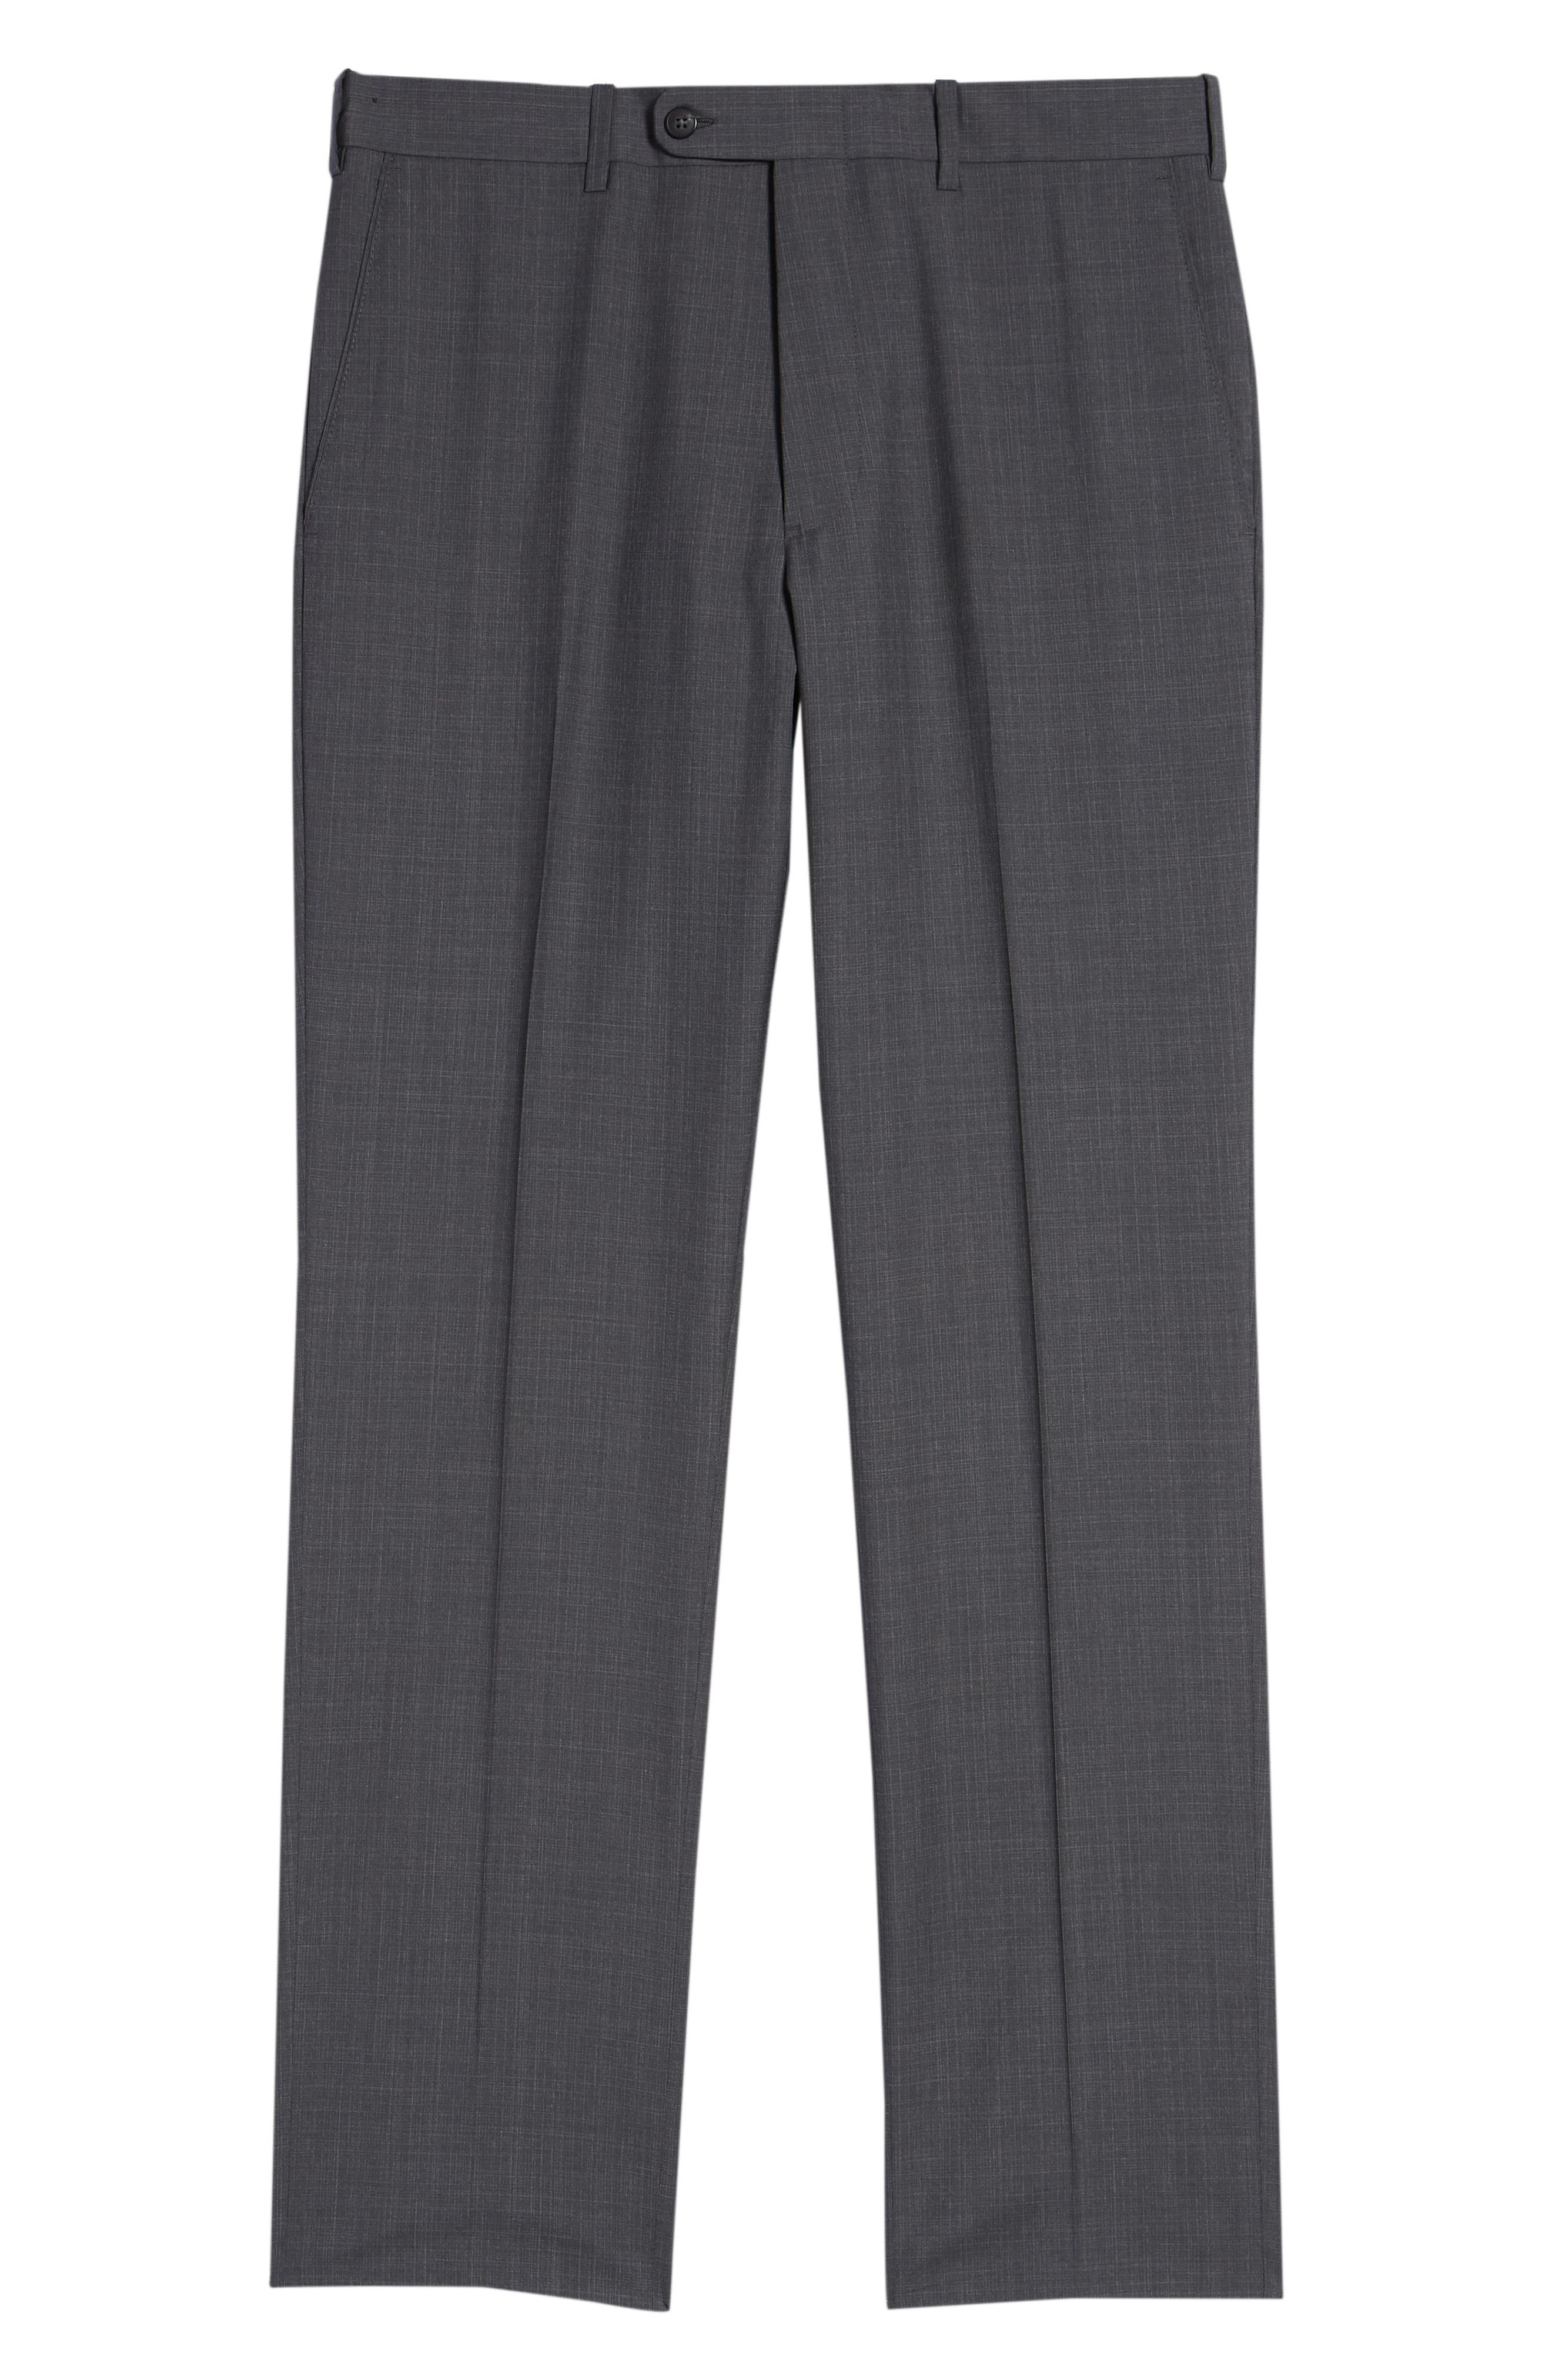 Torino Traditional Fit Flat Front Plaid Wool Trousers,                             Alternate thumbnail 6, color,                             GREY